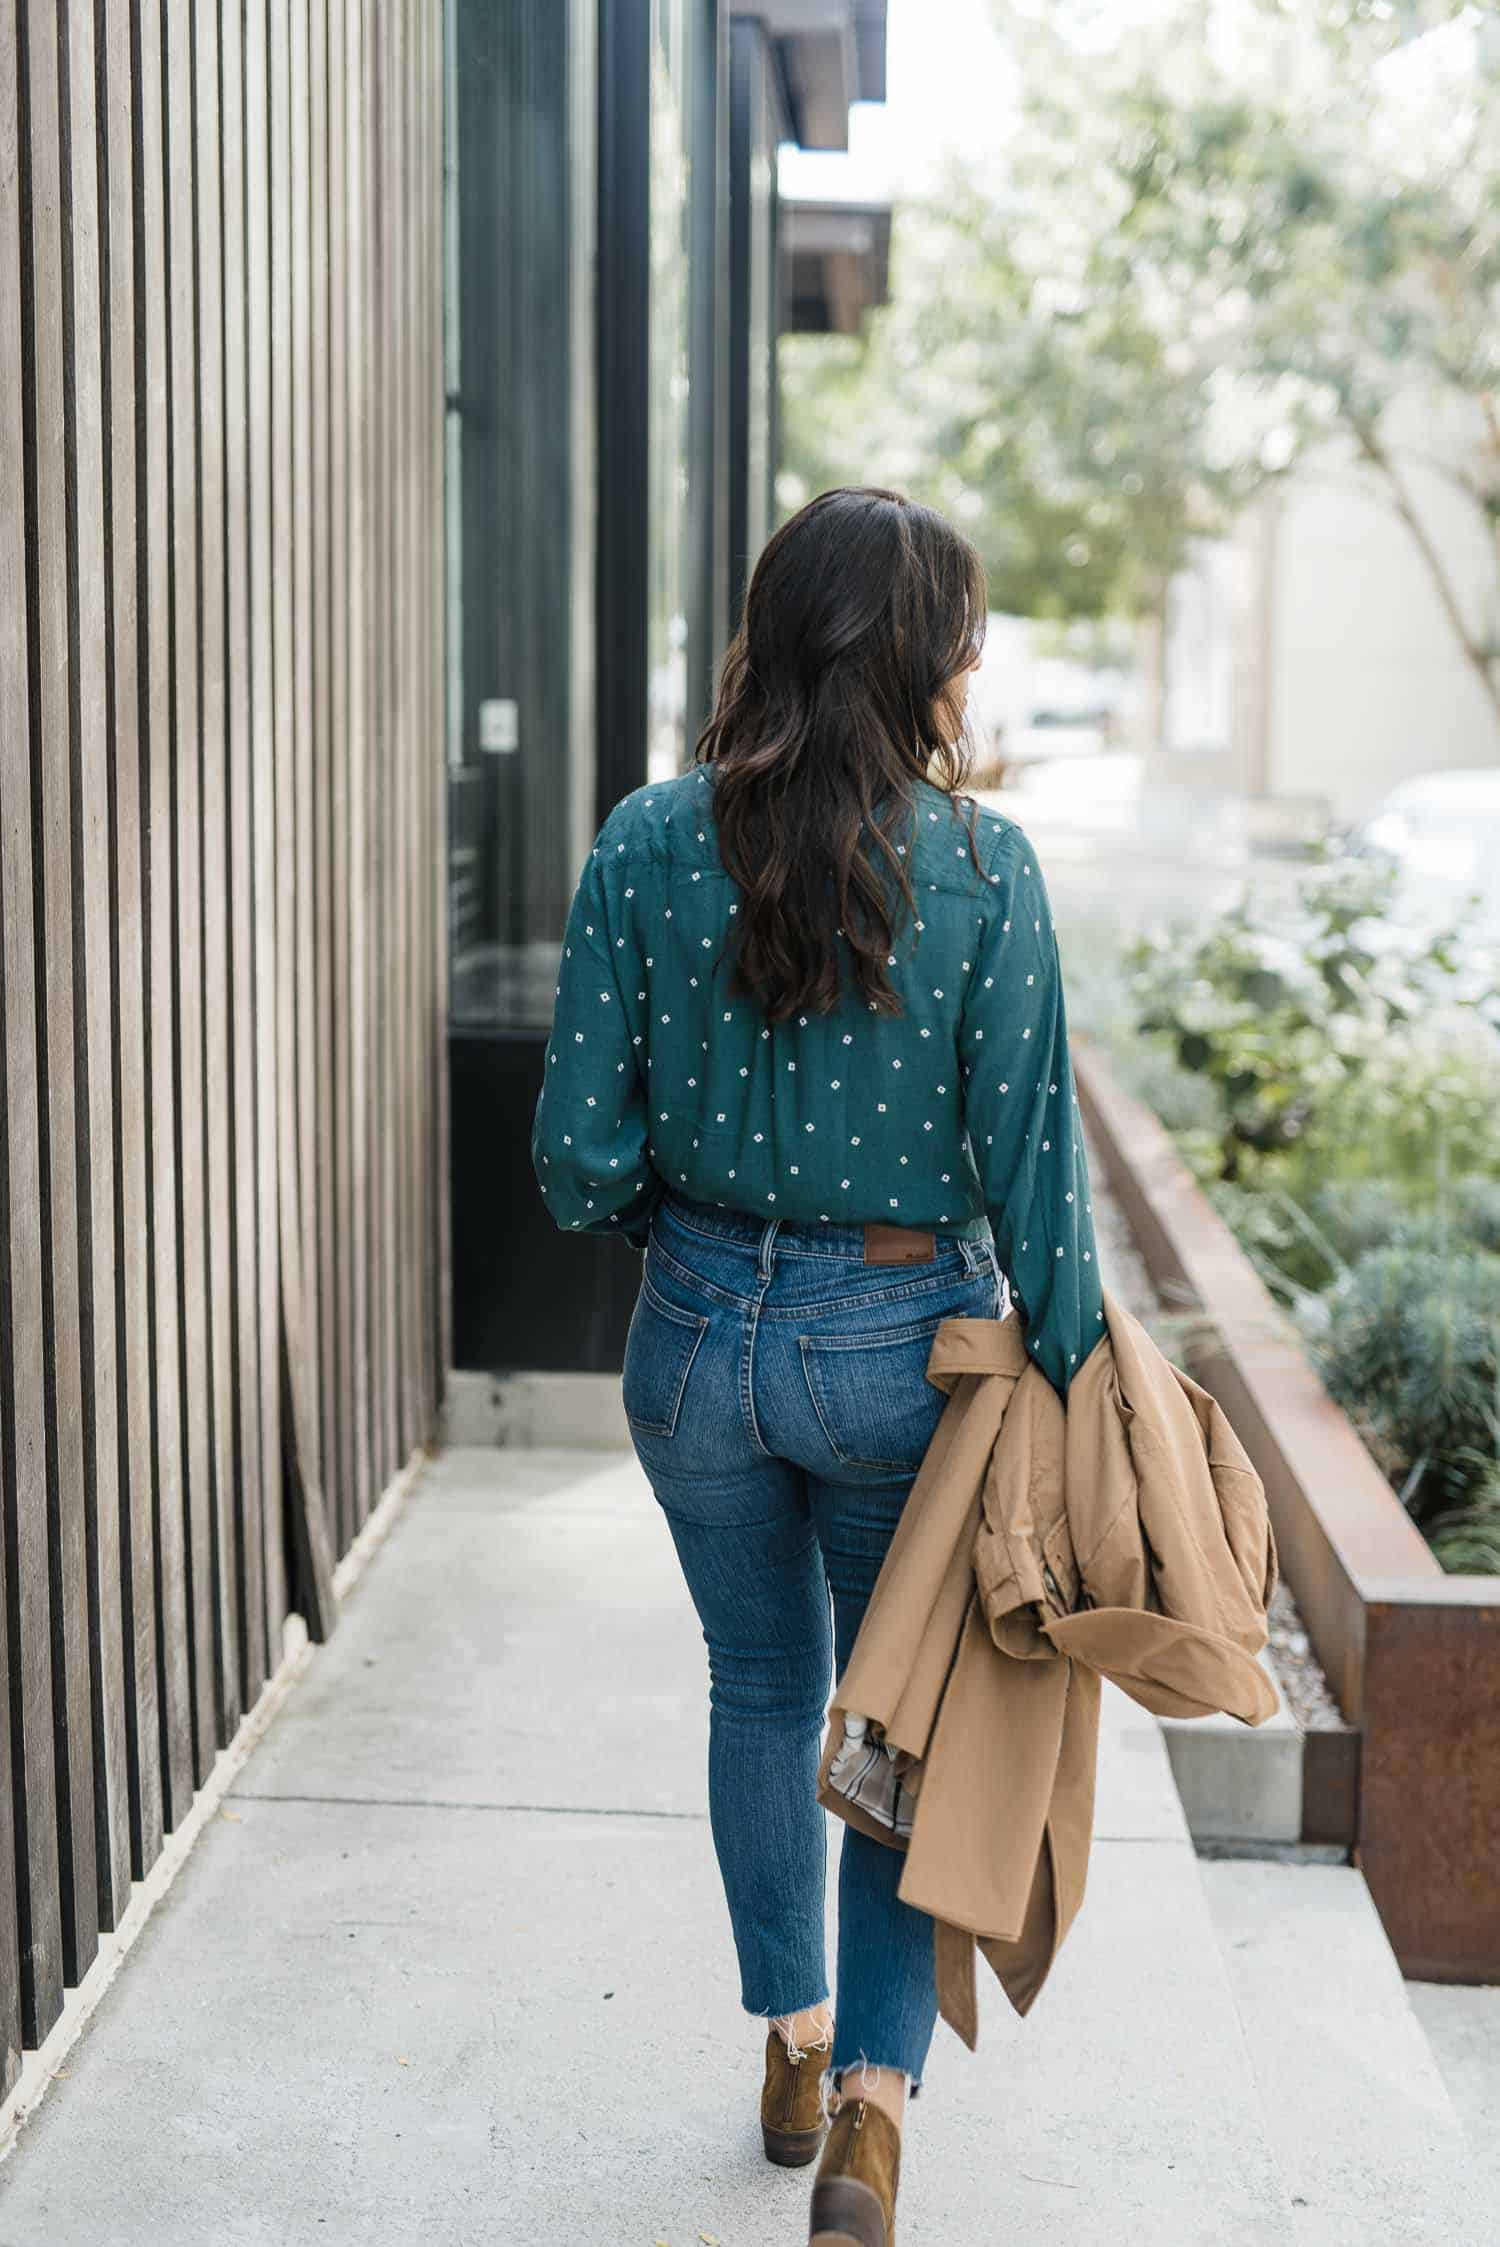 wrap top, outfit ideas for jeans - My Style Vita